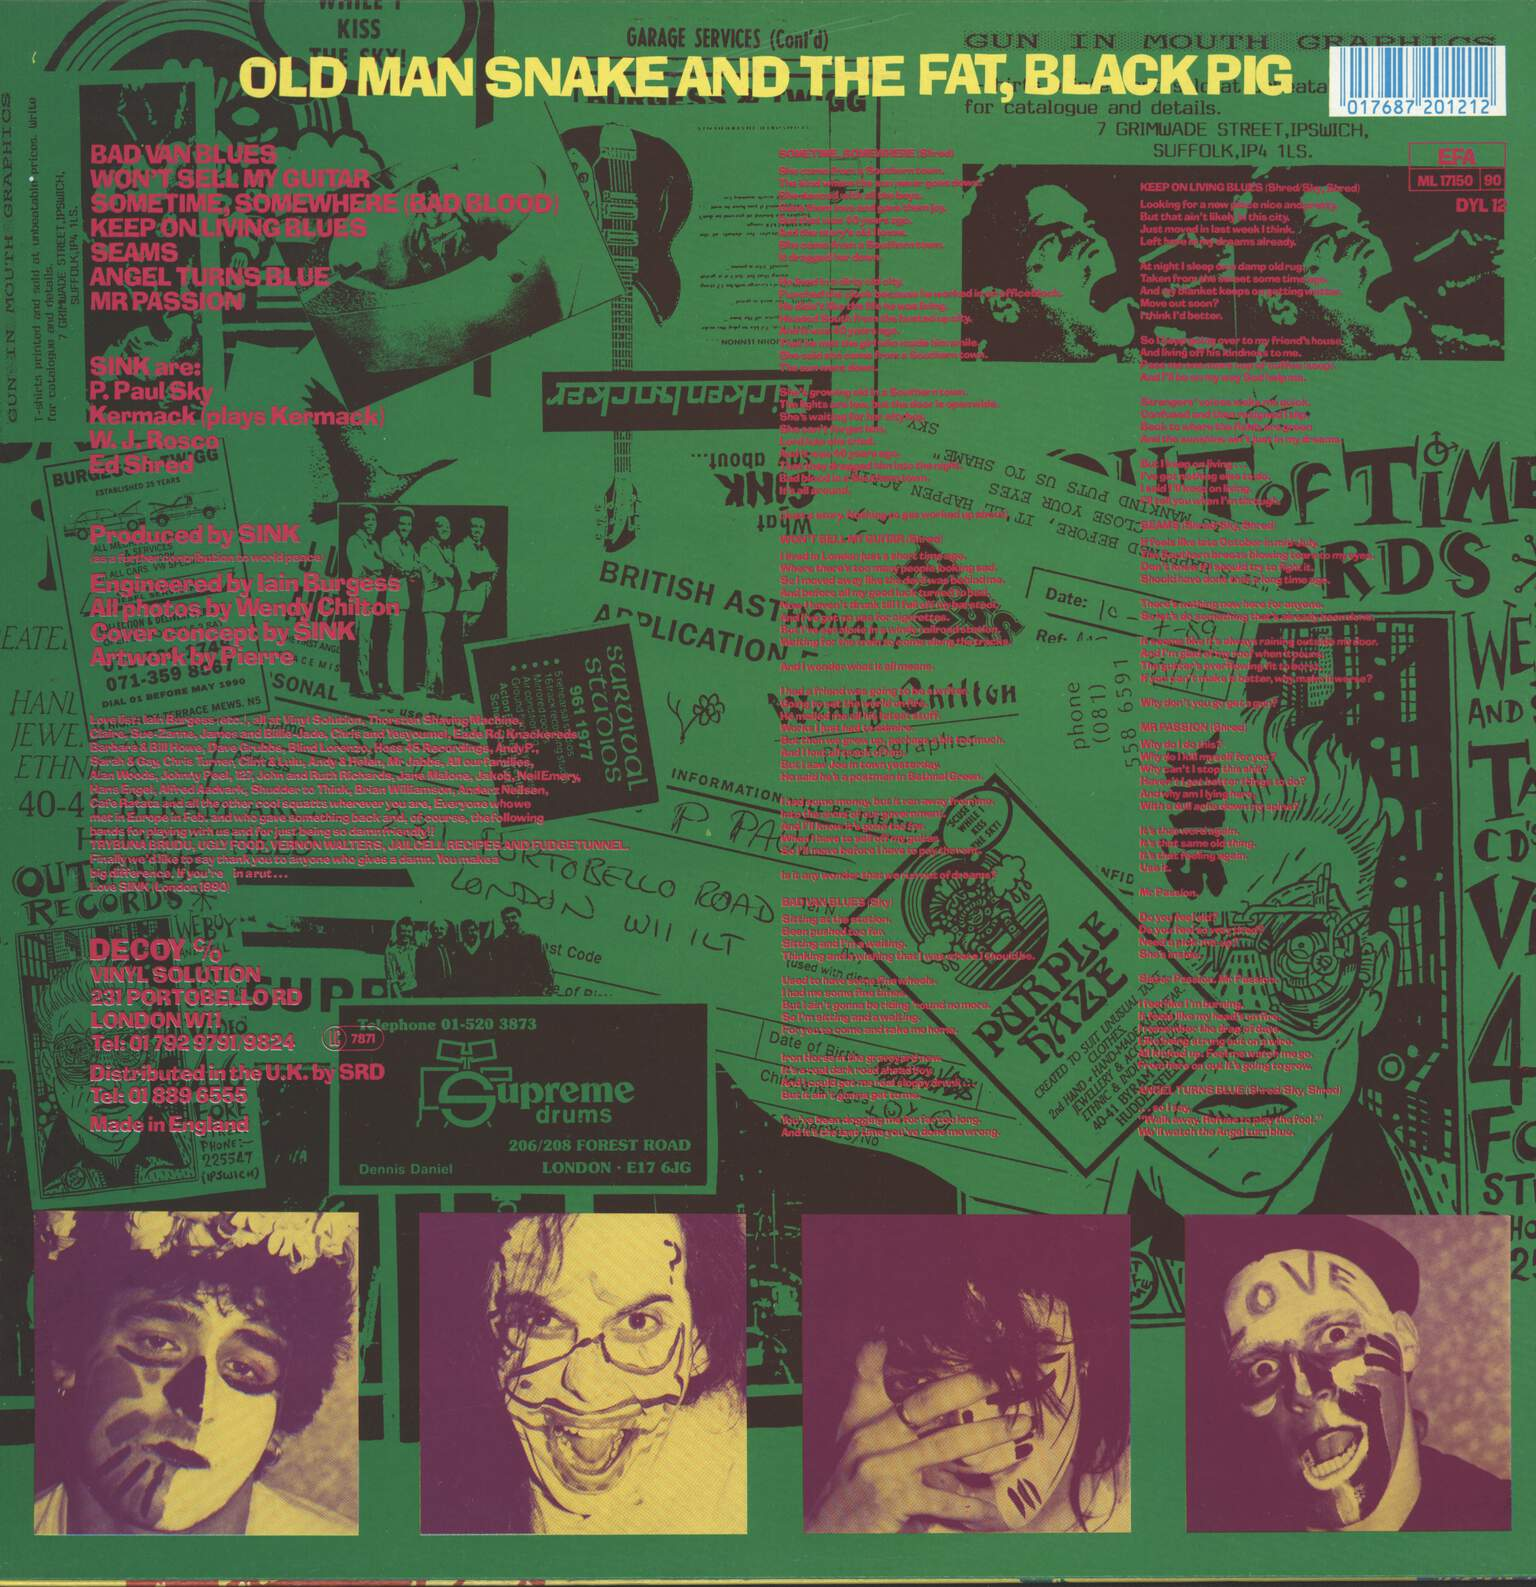 Sink: Old Man Snake And The Fat, Black Pig, LP (Vinyl)